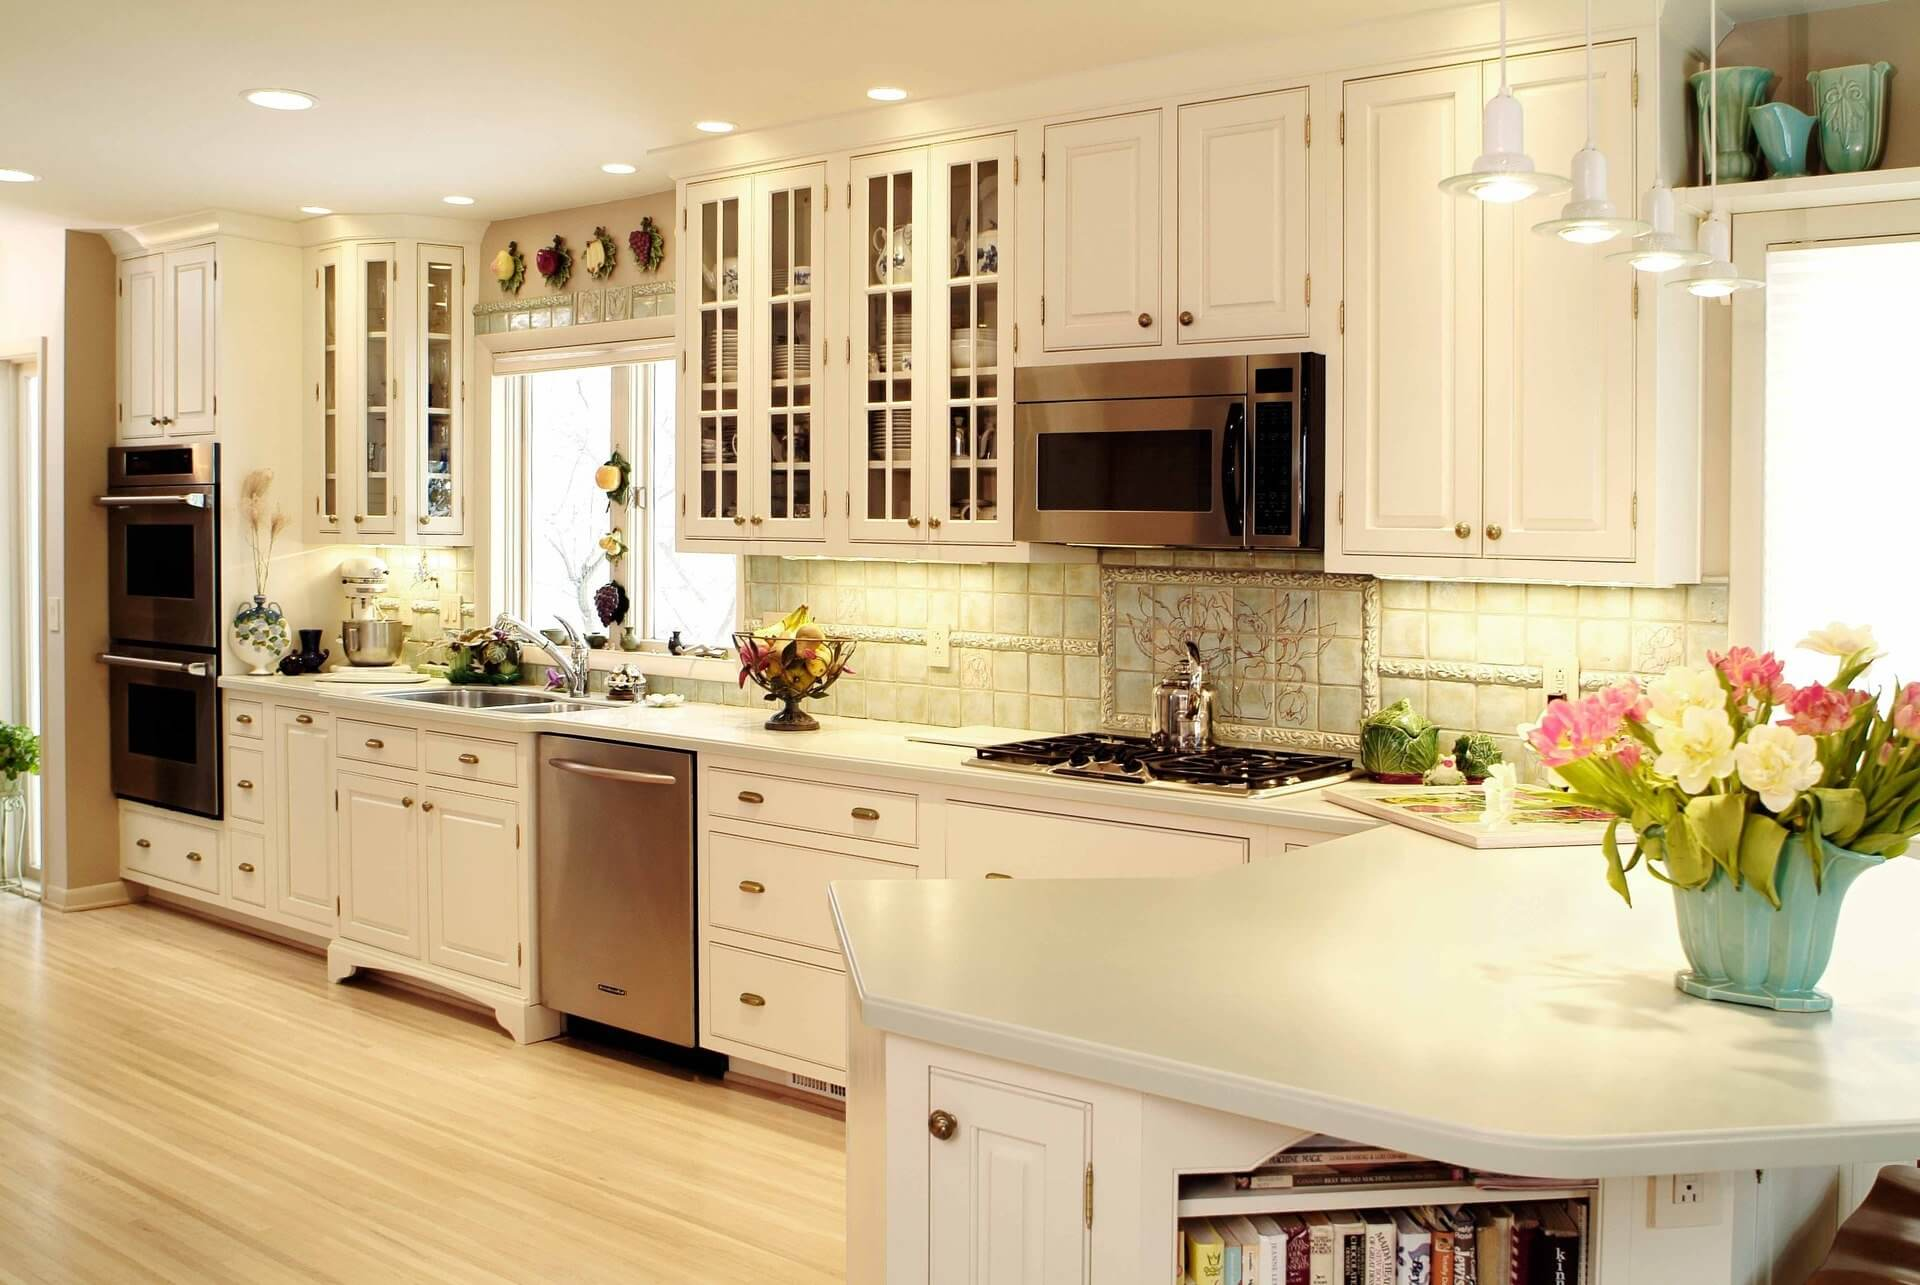 Kitchen Cabinet Showroom Rochester Ny Kitchen Remodel Contractors Rochester Ny Wow Blog